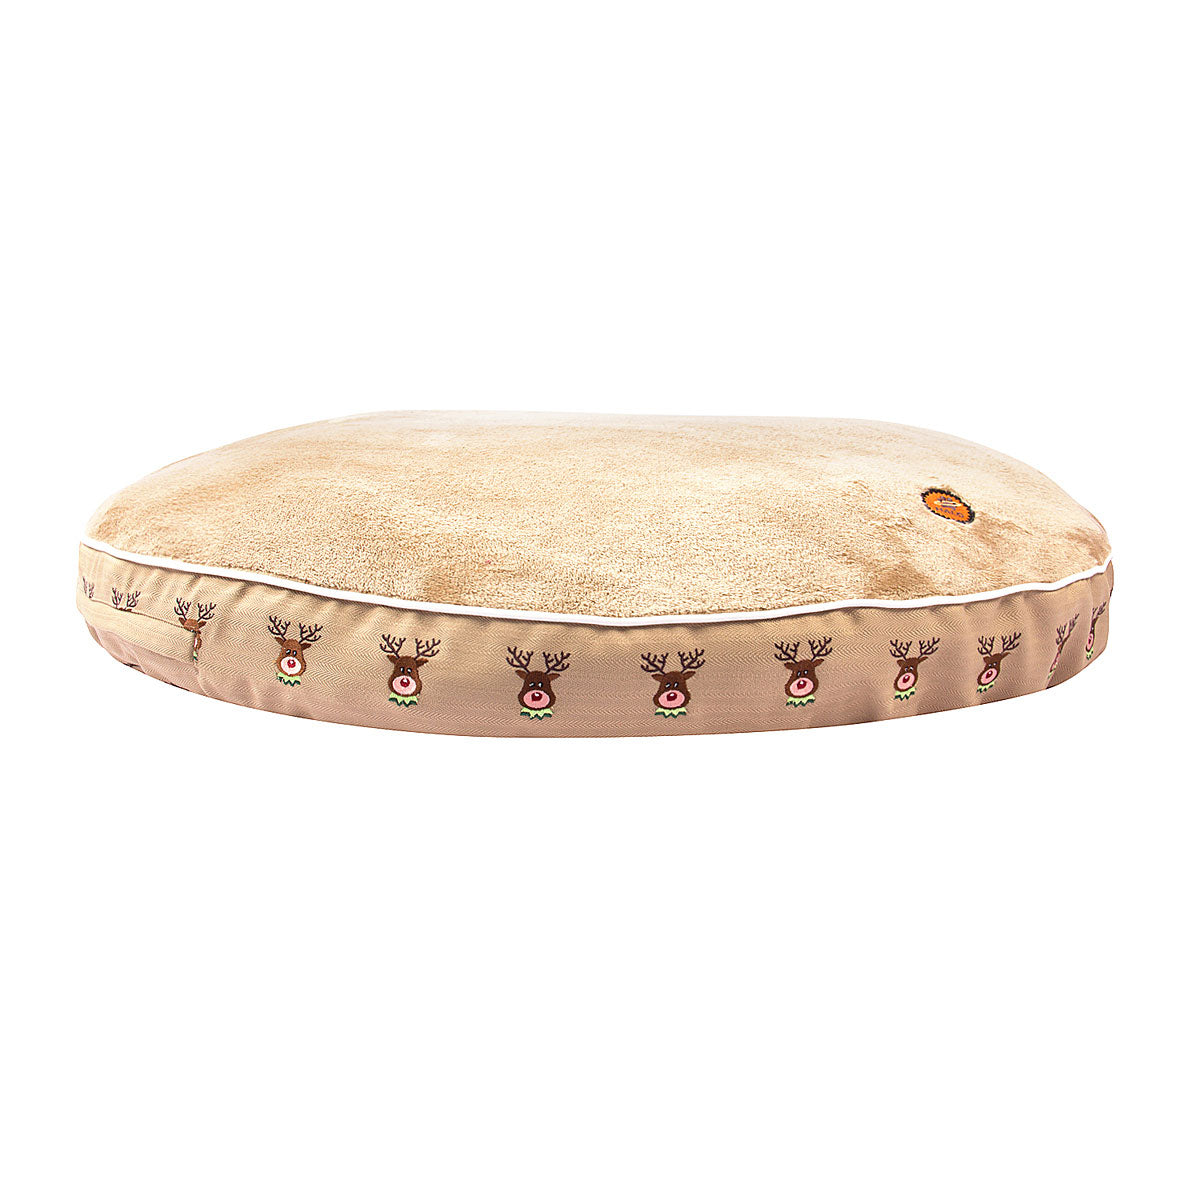 Halo Reindeer Round Dog Bed_2797